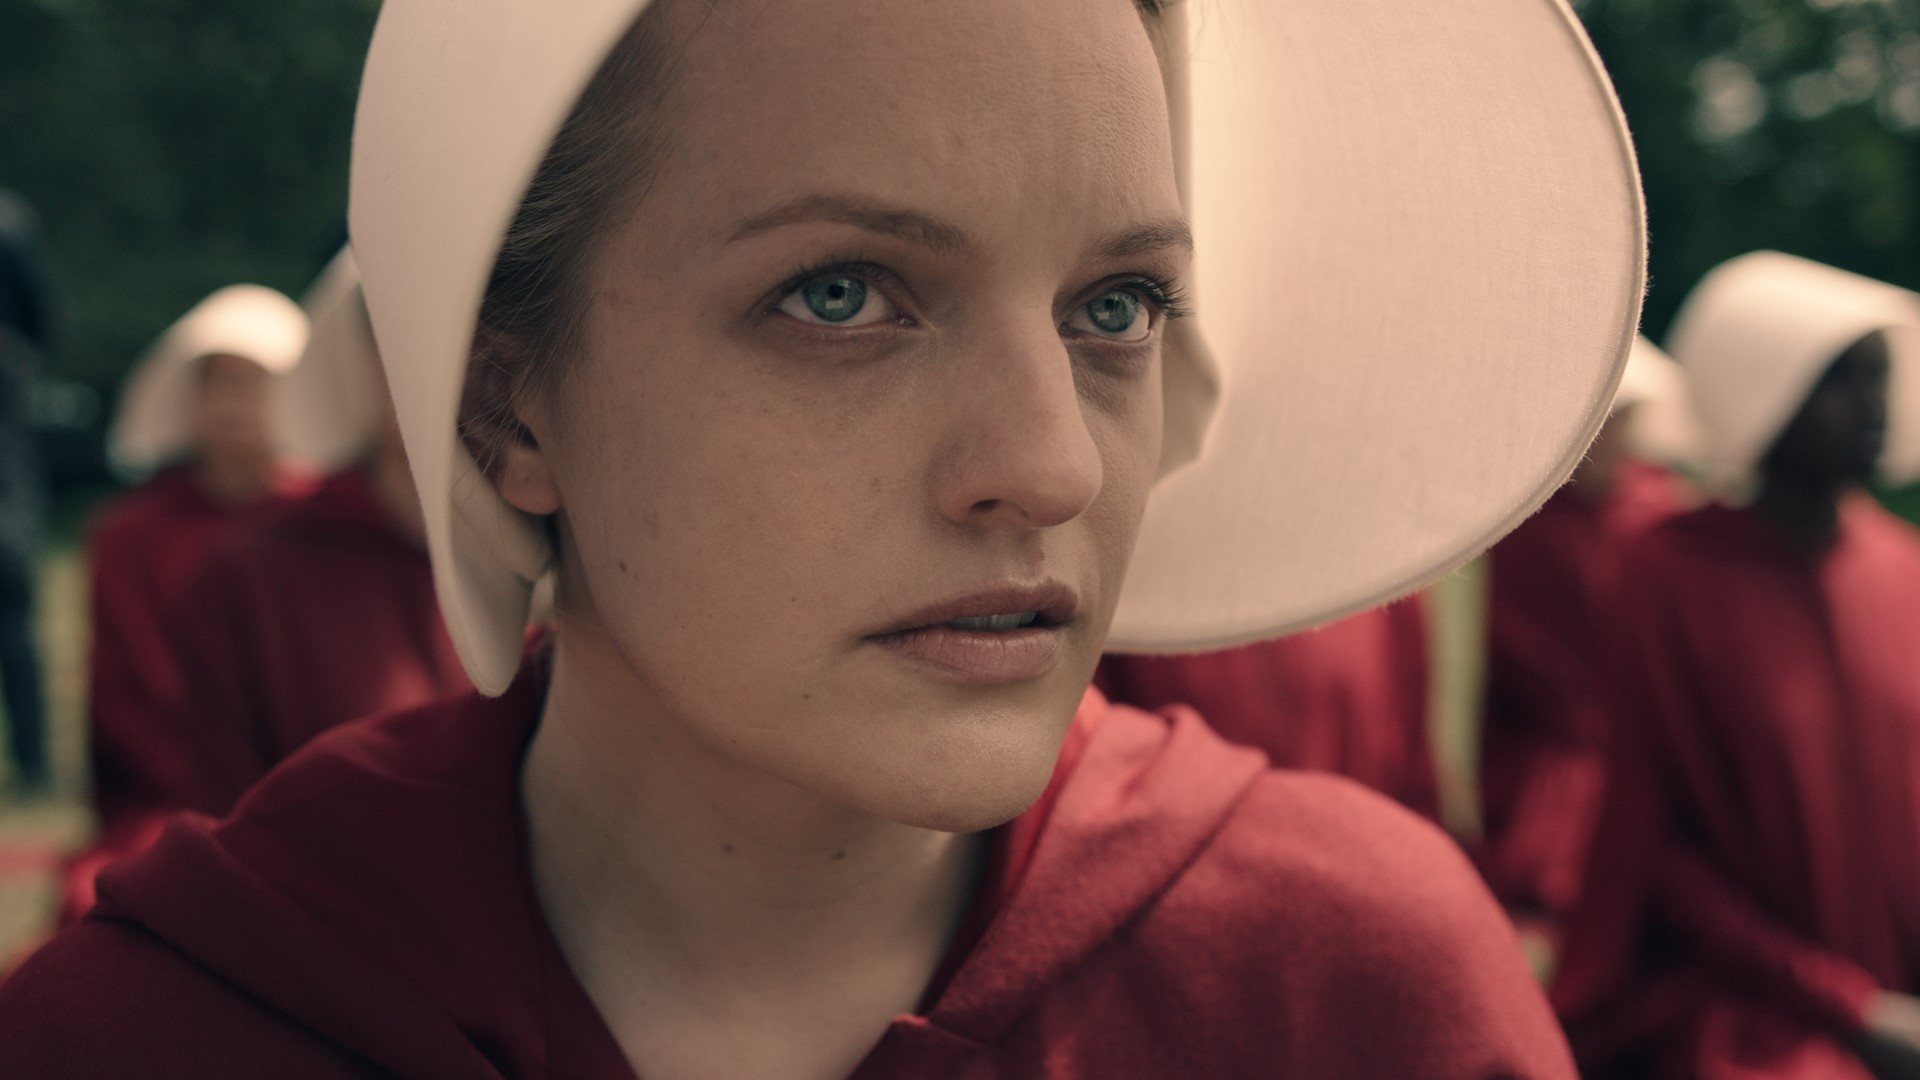 Elizabeth_Moss_as_Offred